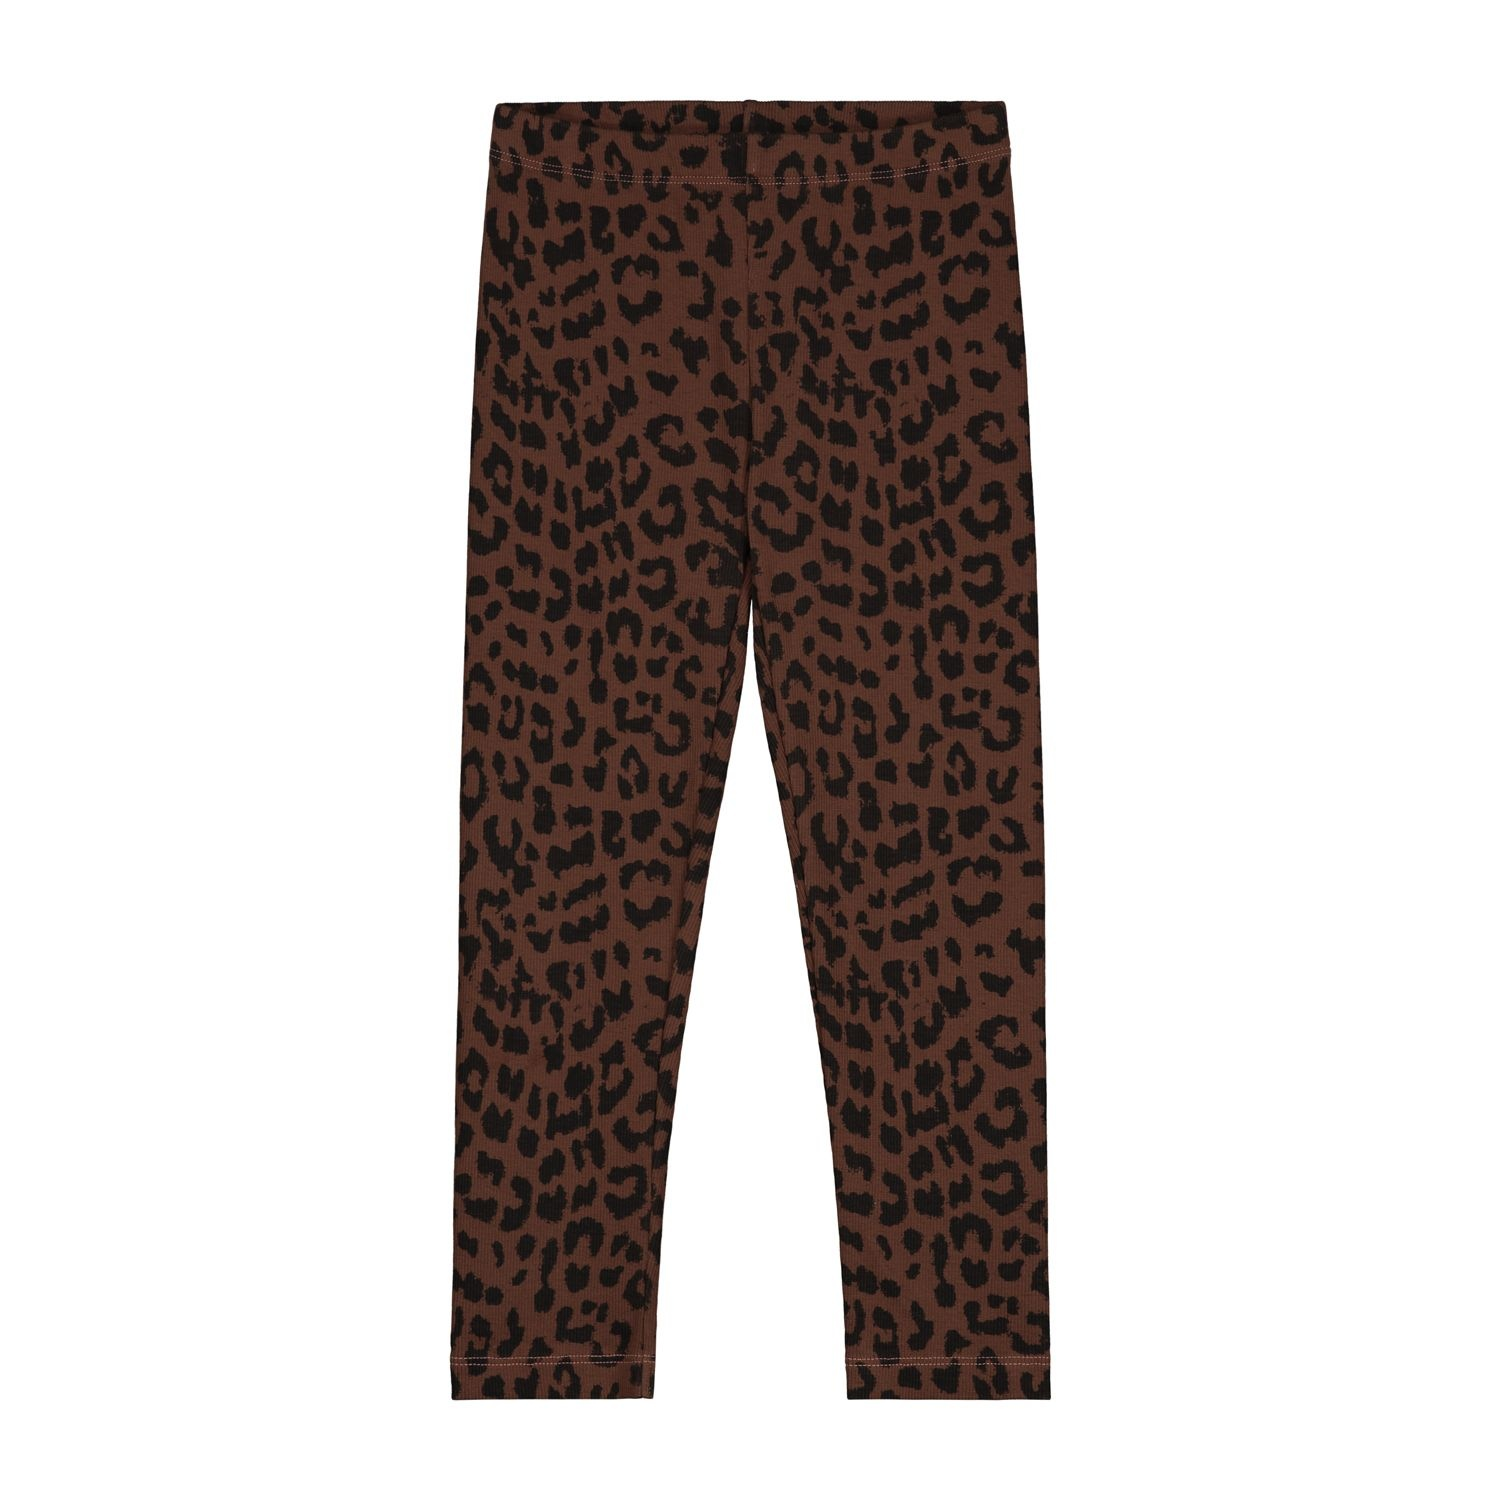 Leopard pants hickory brown-1